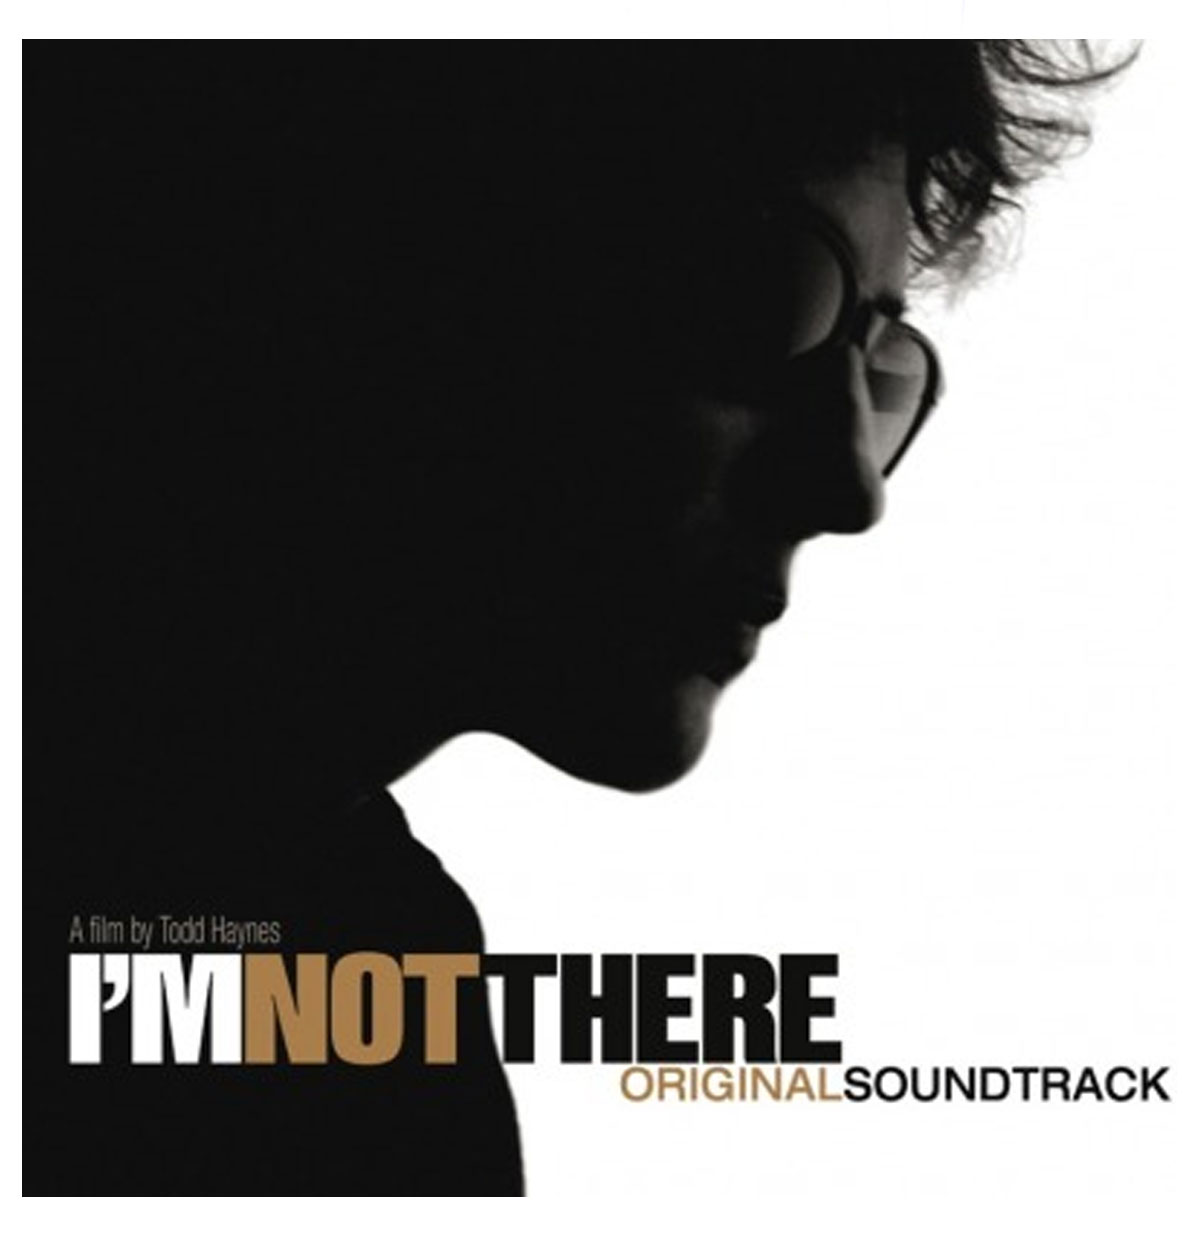 Bob Dylan - Soundtrack - I'm Not There 4LP